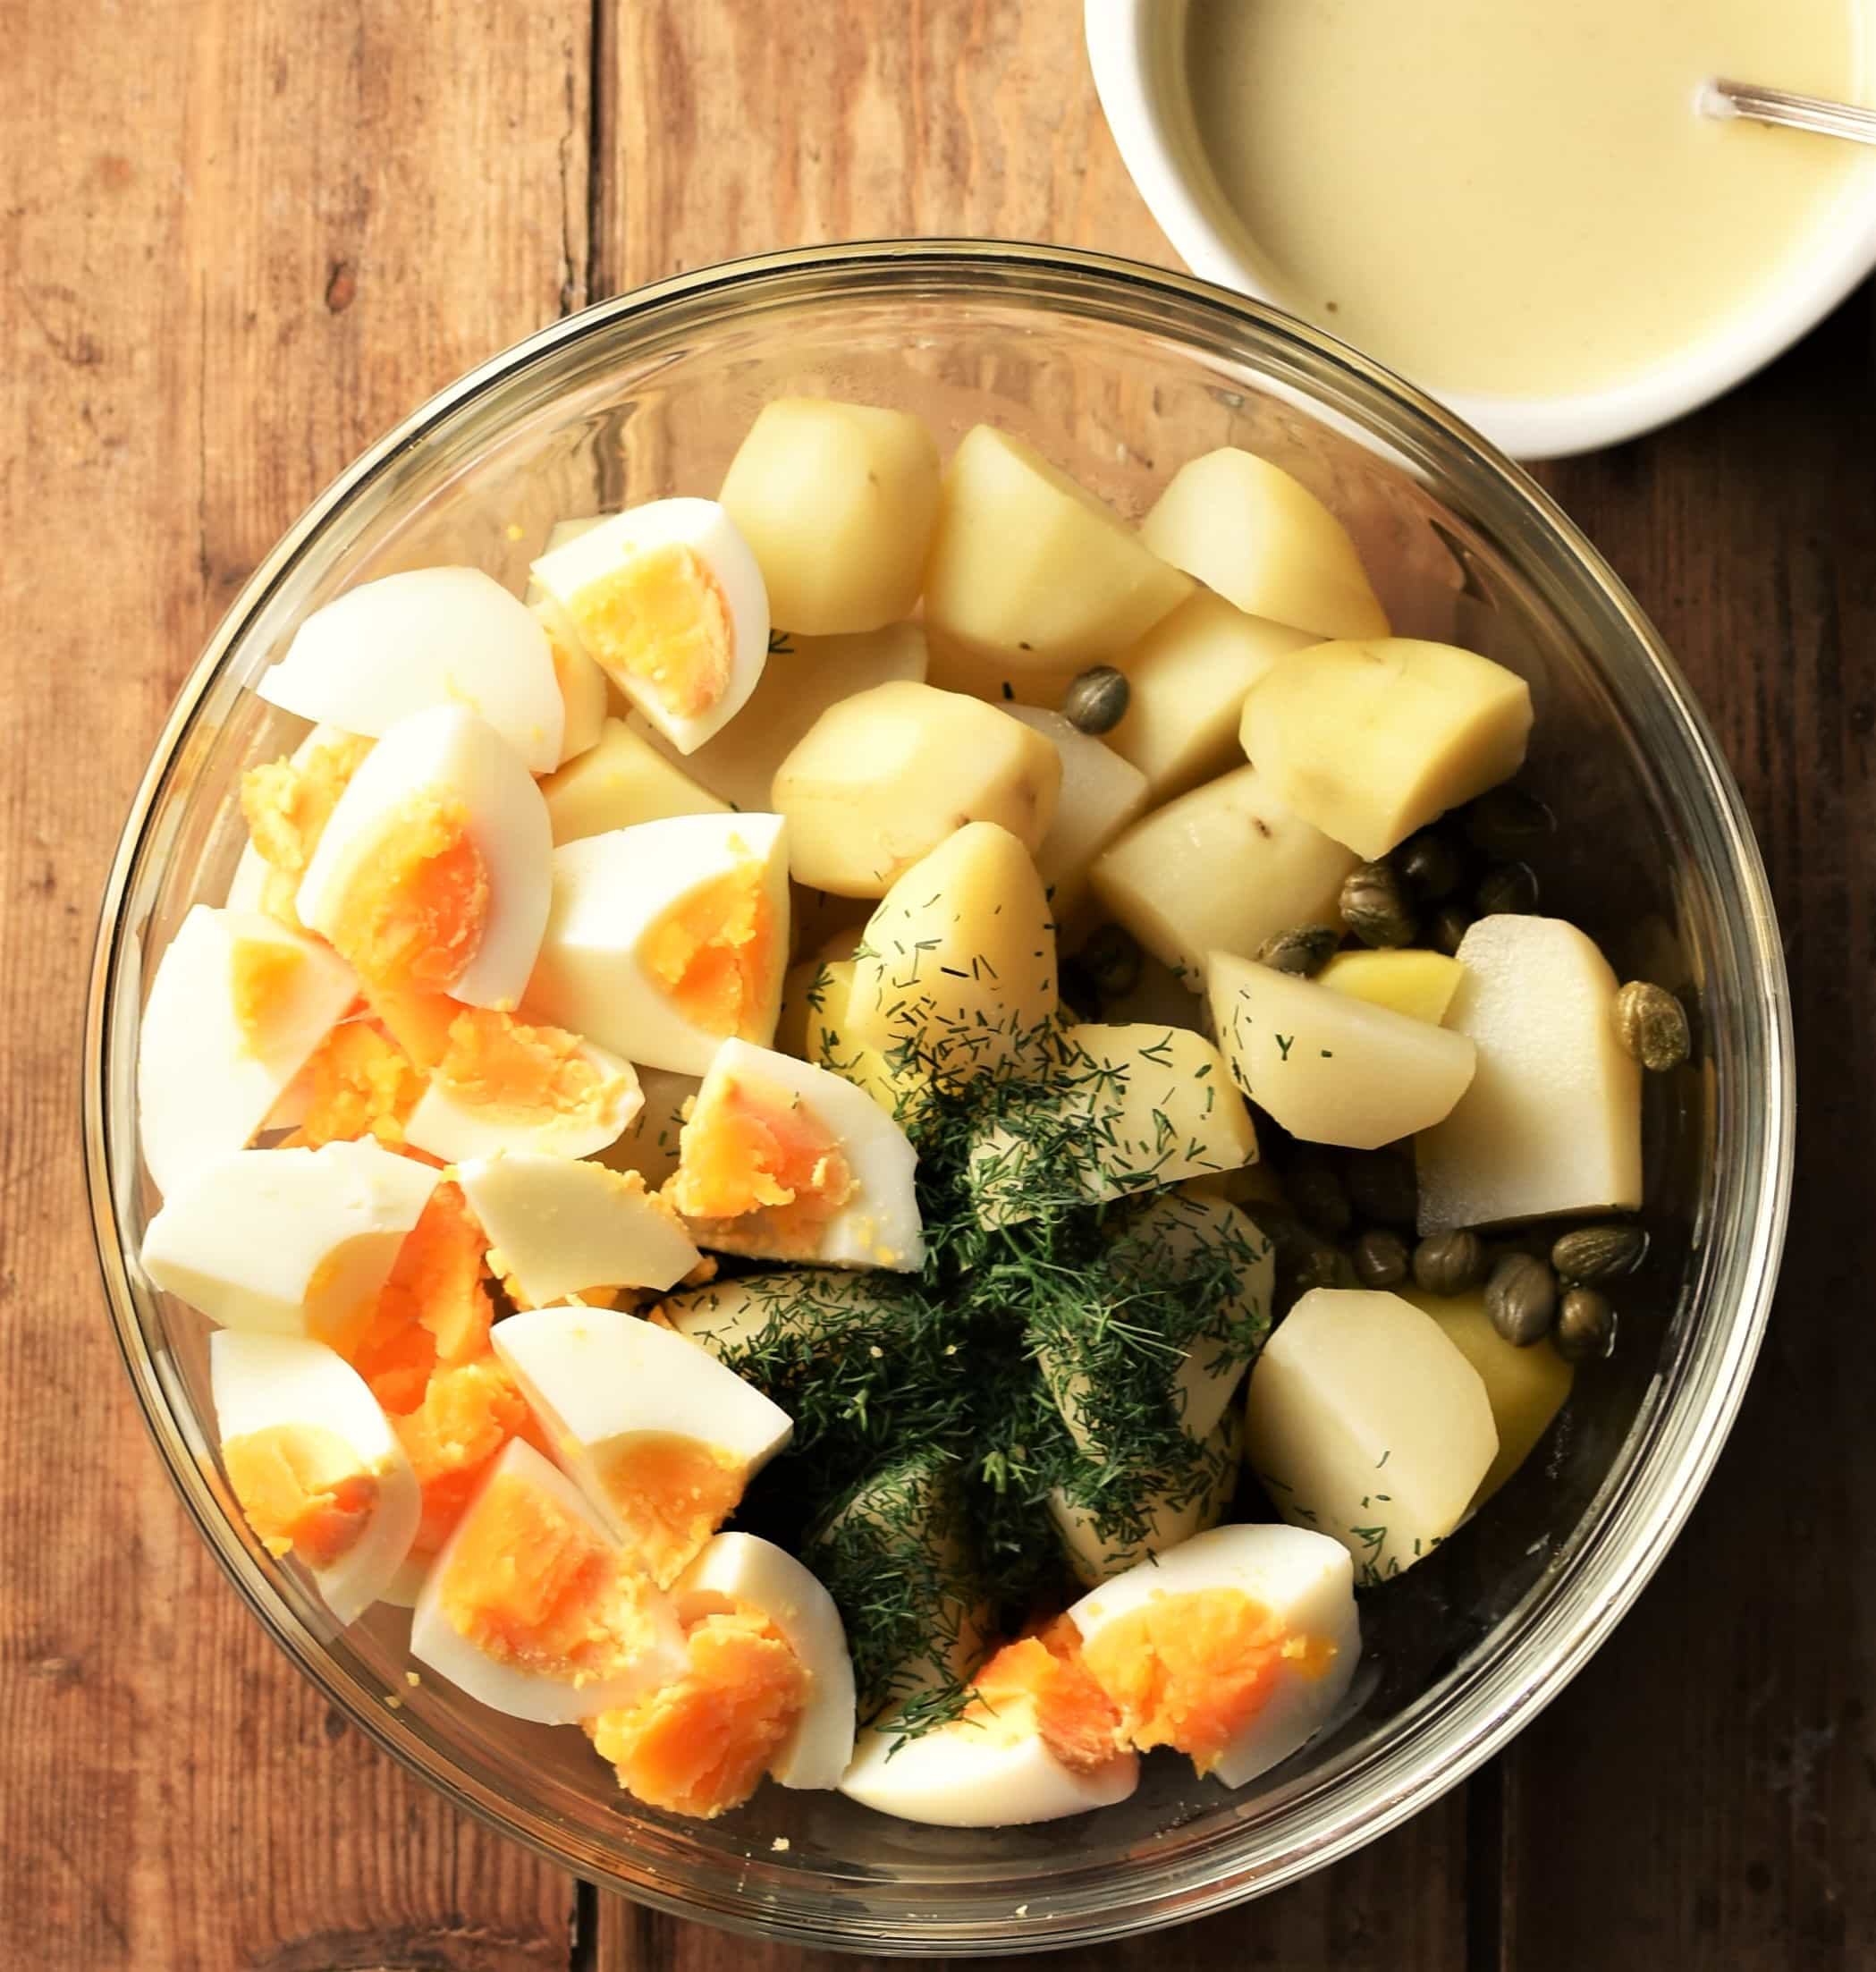 Cubed peeled potatoes and hard boiled egg, capers and dill in bowl with creamy dressing in top right.